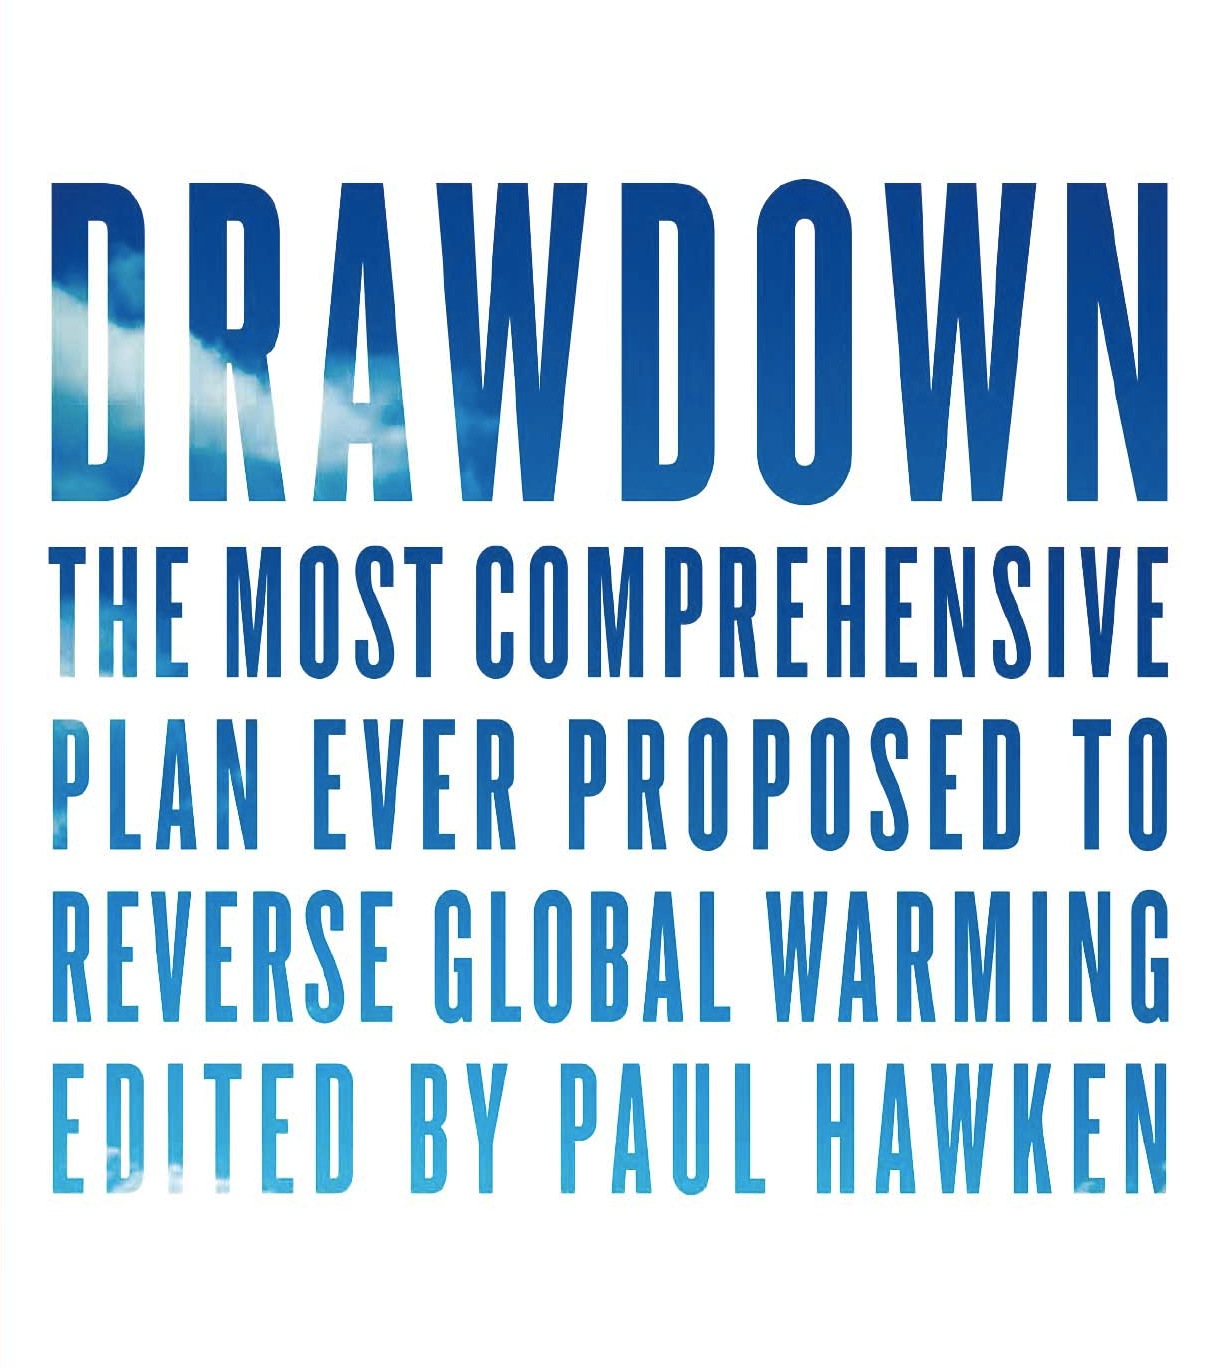 drawdown_book_cover.png